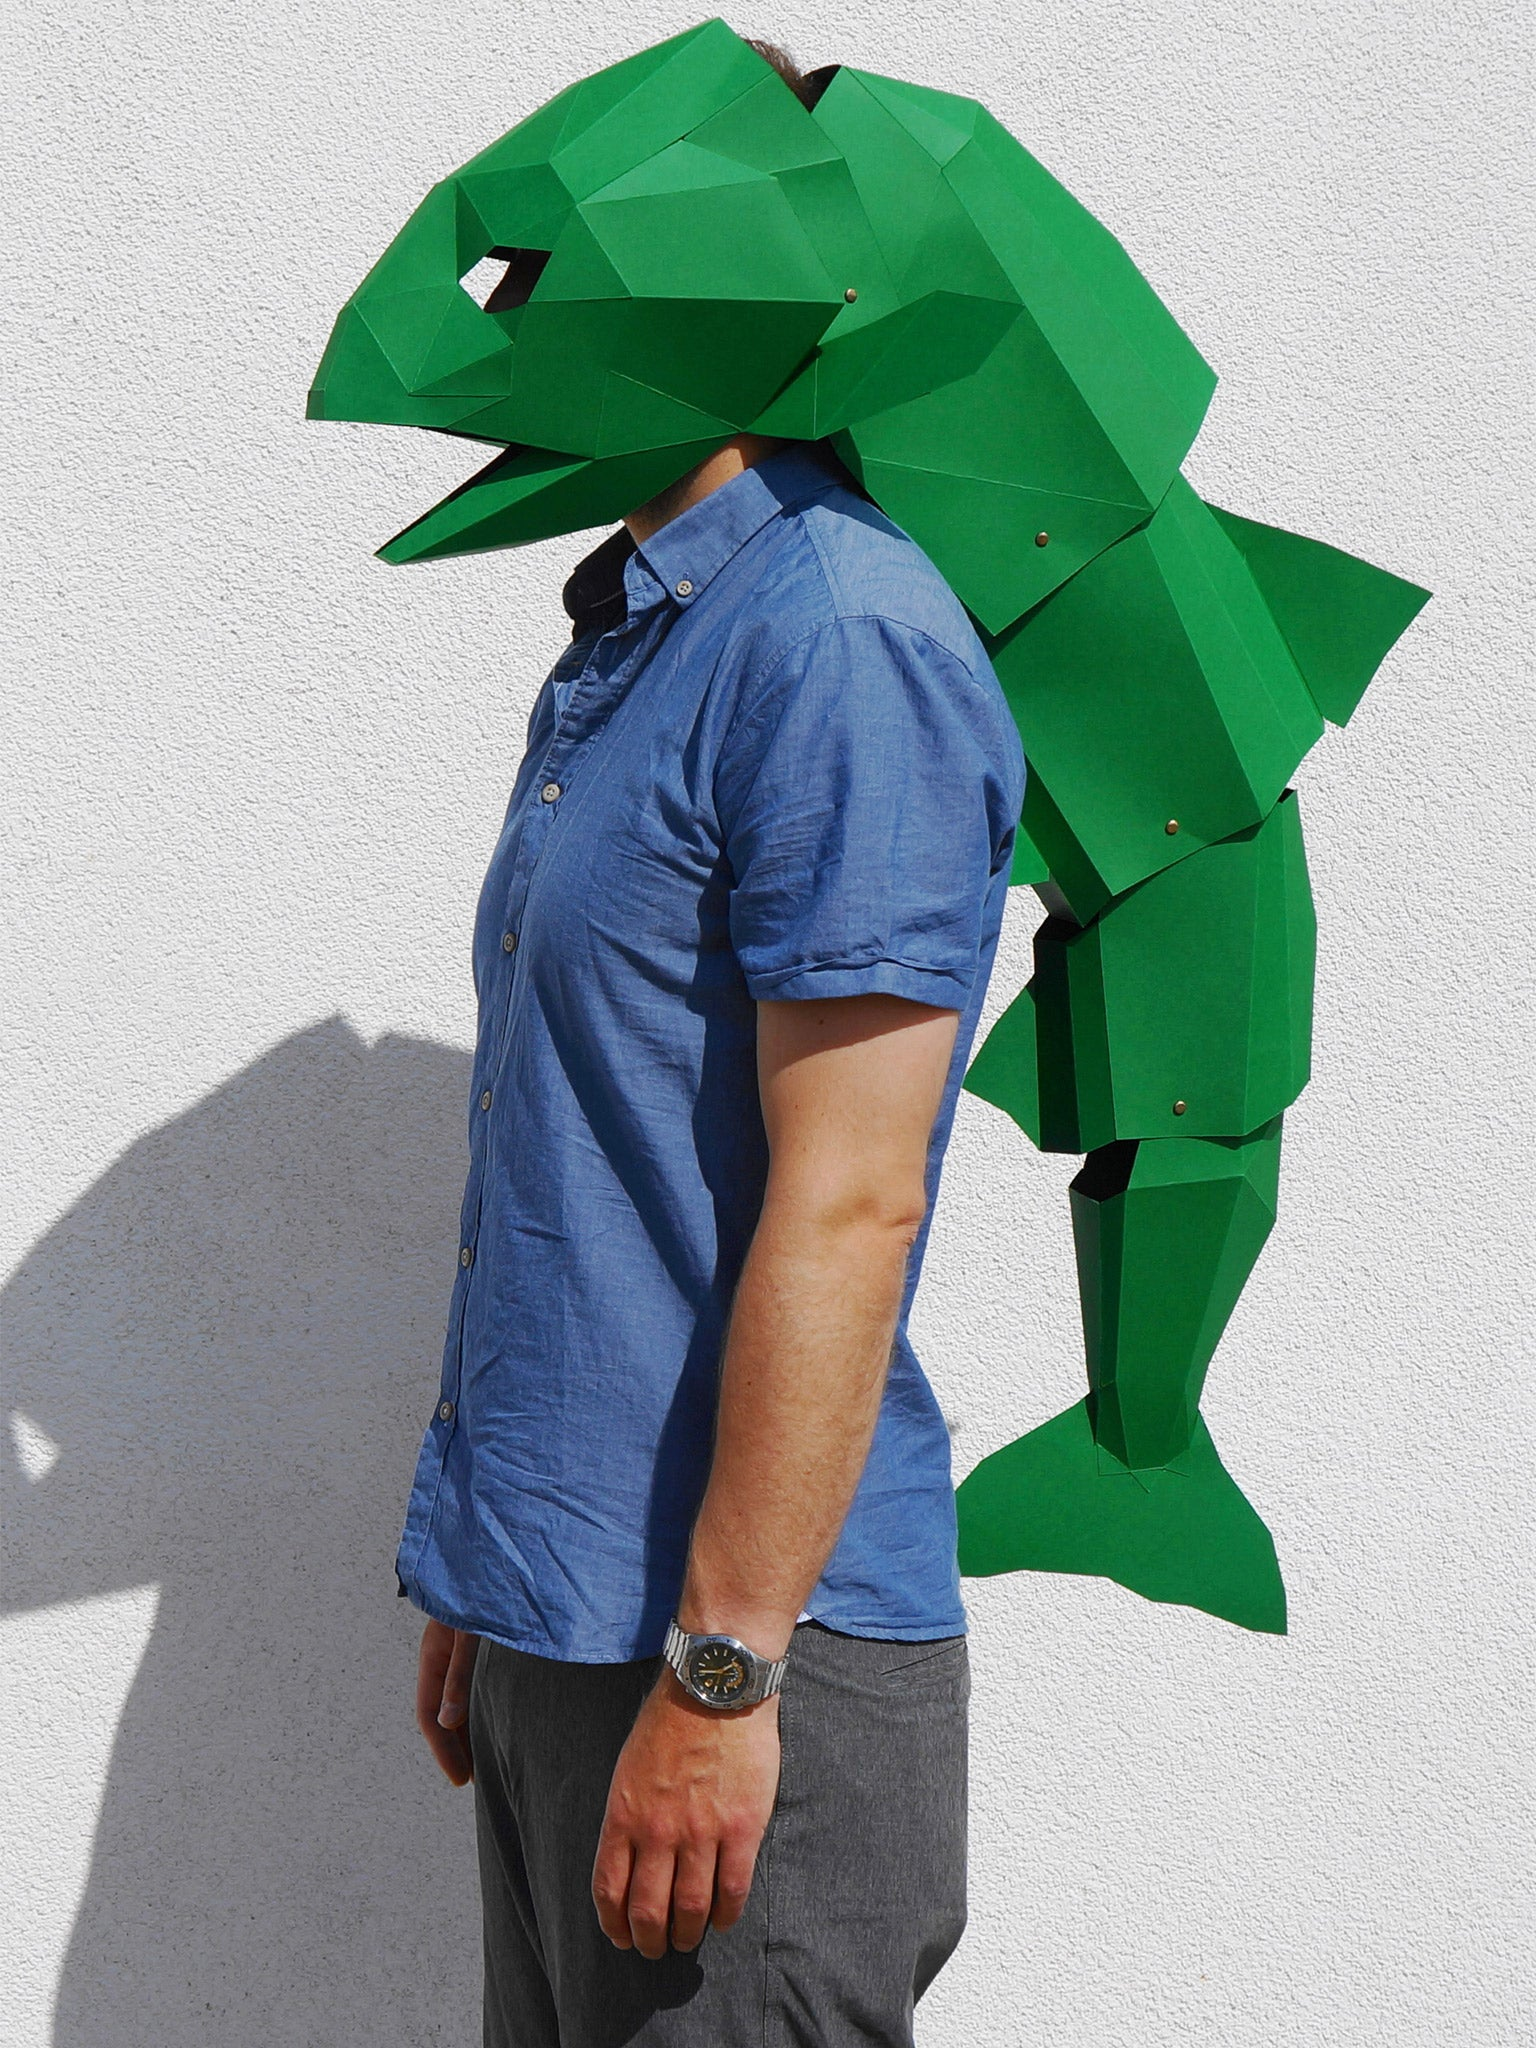 This Green Fish Mask Is Wintercrofts Favourite Design